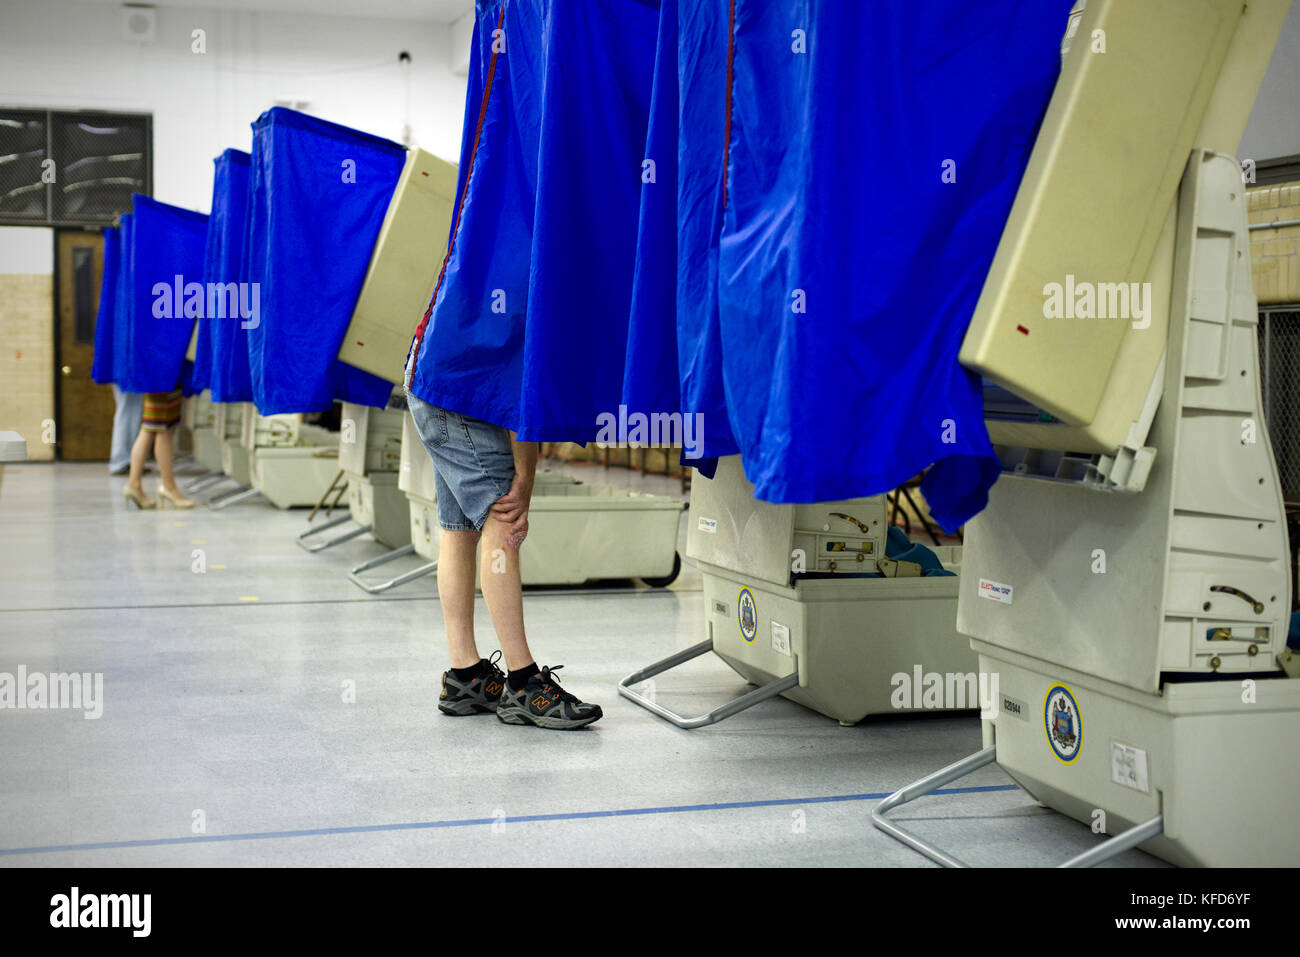 On Election Day, electronic voting machines are lined up at a Philadelphia, PA polling station as citizens cast - Stock Image